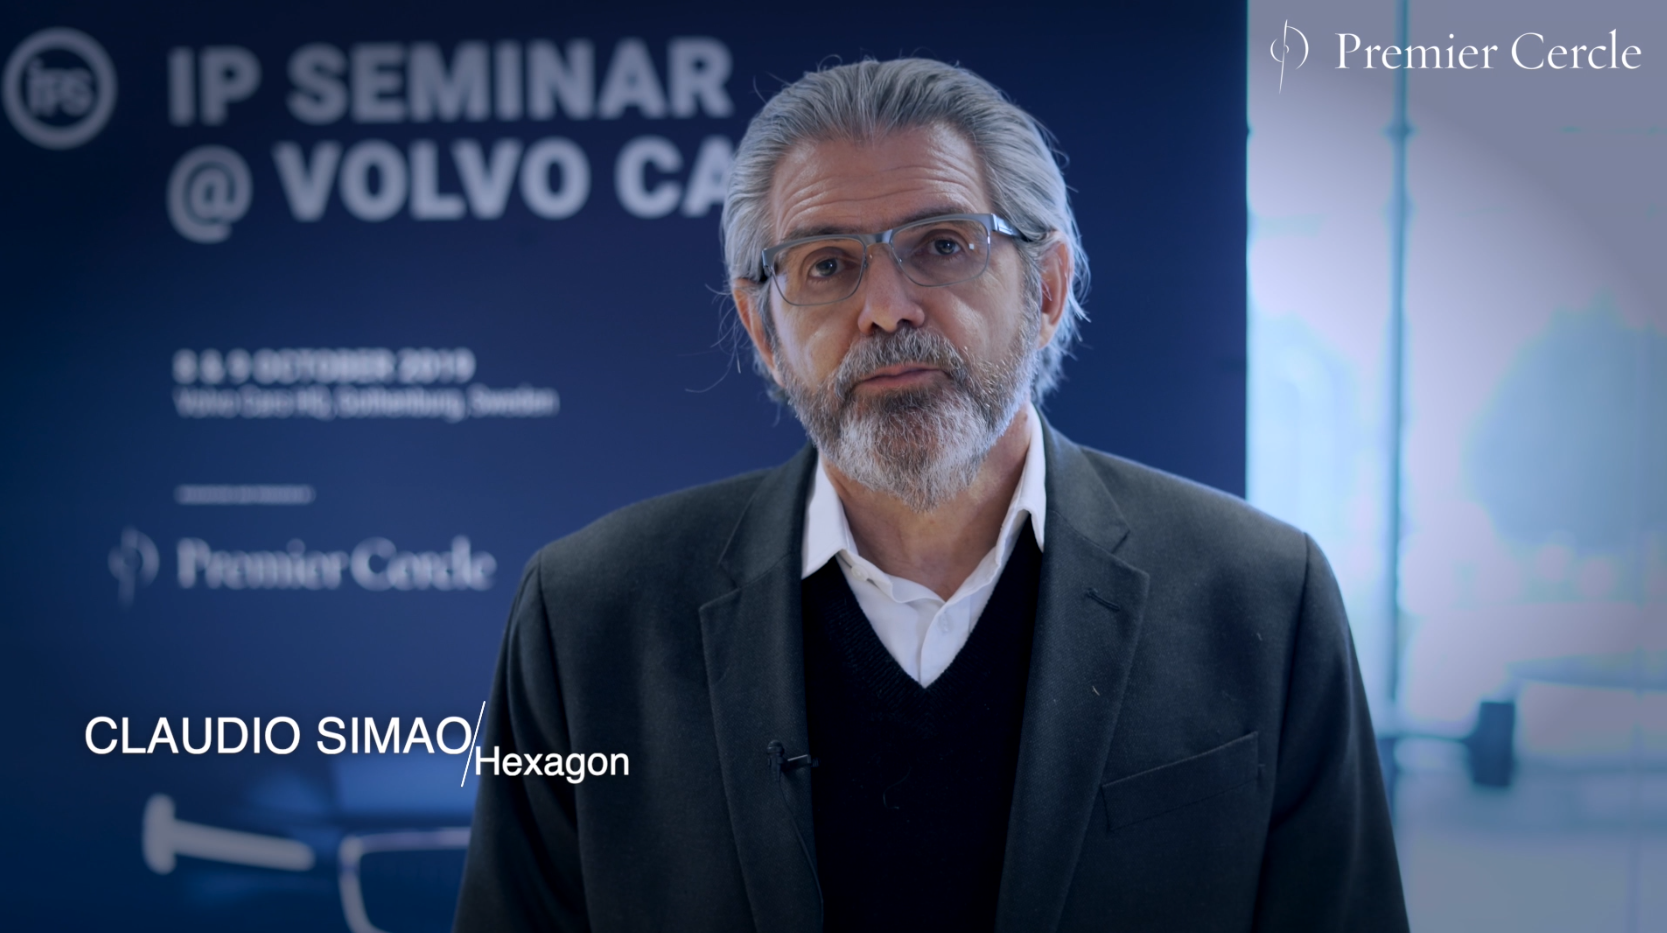 Claudio Simao from Hexagon interviewed by Premier Cercle